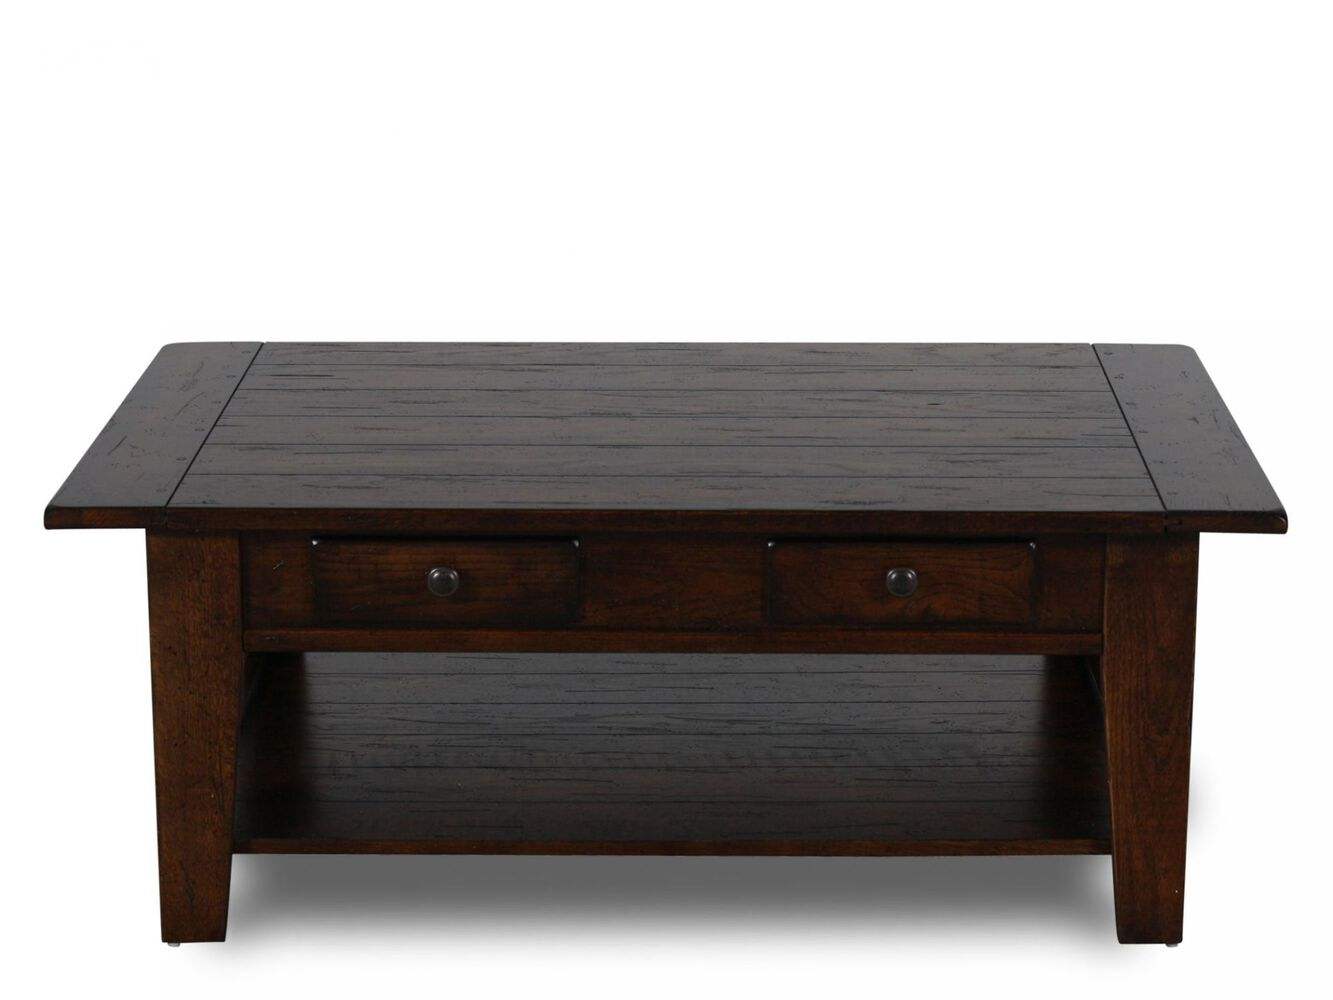 Broyhill Attic Heirlooms Rustic Cocktail Table - Broyhill Attic Heirlooms Rustic Cocktail Table Mathis Brothers